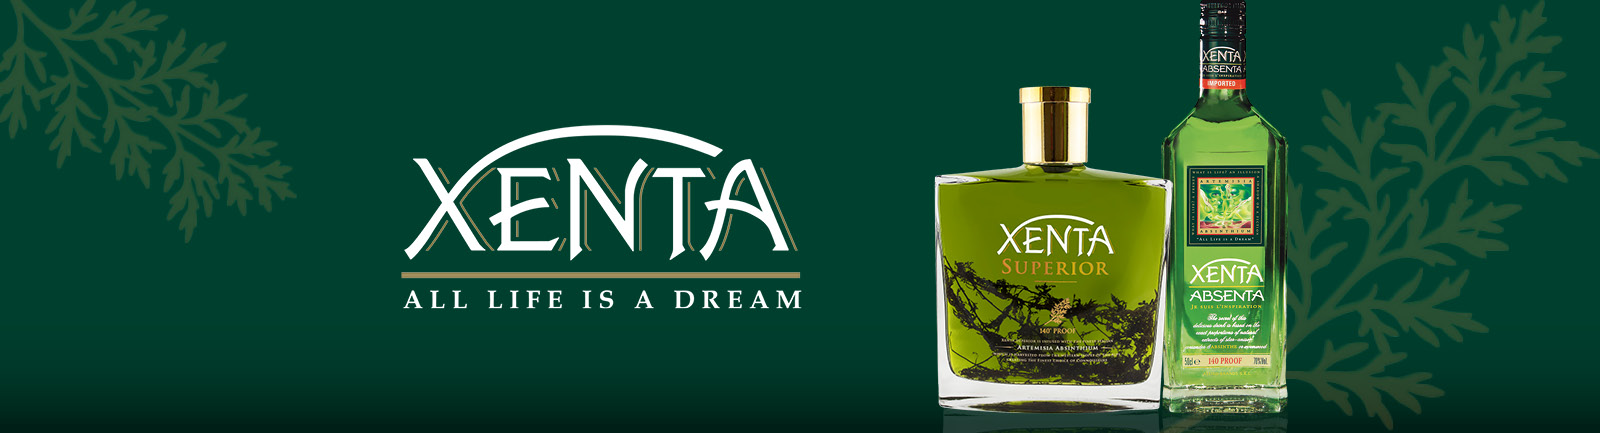 brand-page-banner-xenta.jpg